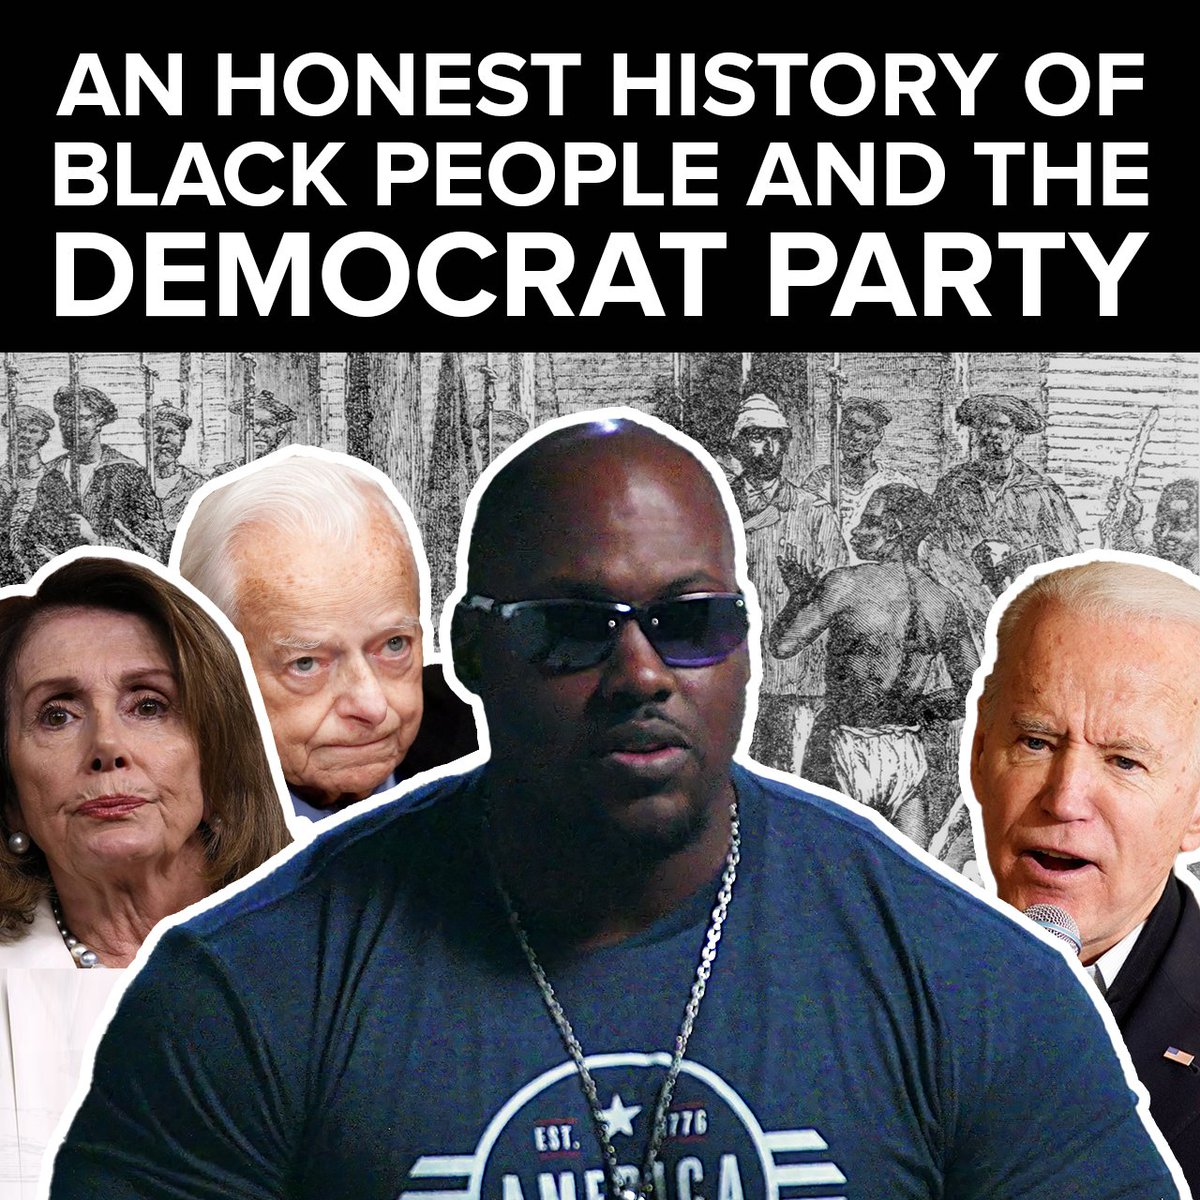 This man is NOT black according to Joe Biden  Maybe Joe doesn't want him spreading the TRUTH about the Democrat Party's bitter, racist history  Know the facts, don't let the media lie to you  Subscribe to hear @magamuscles' message: